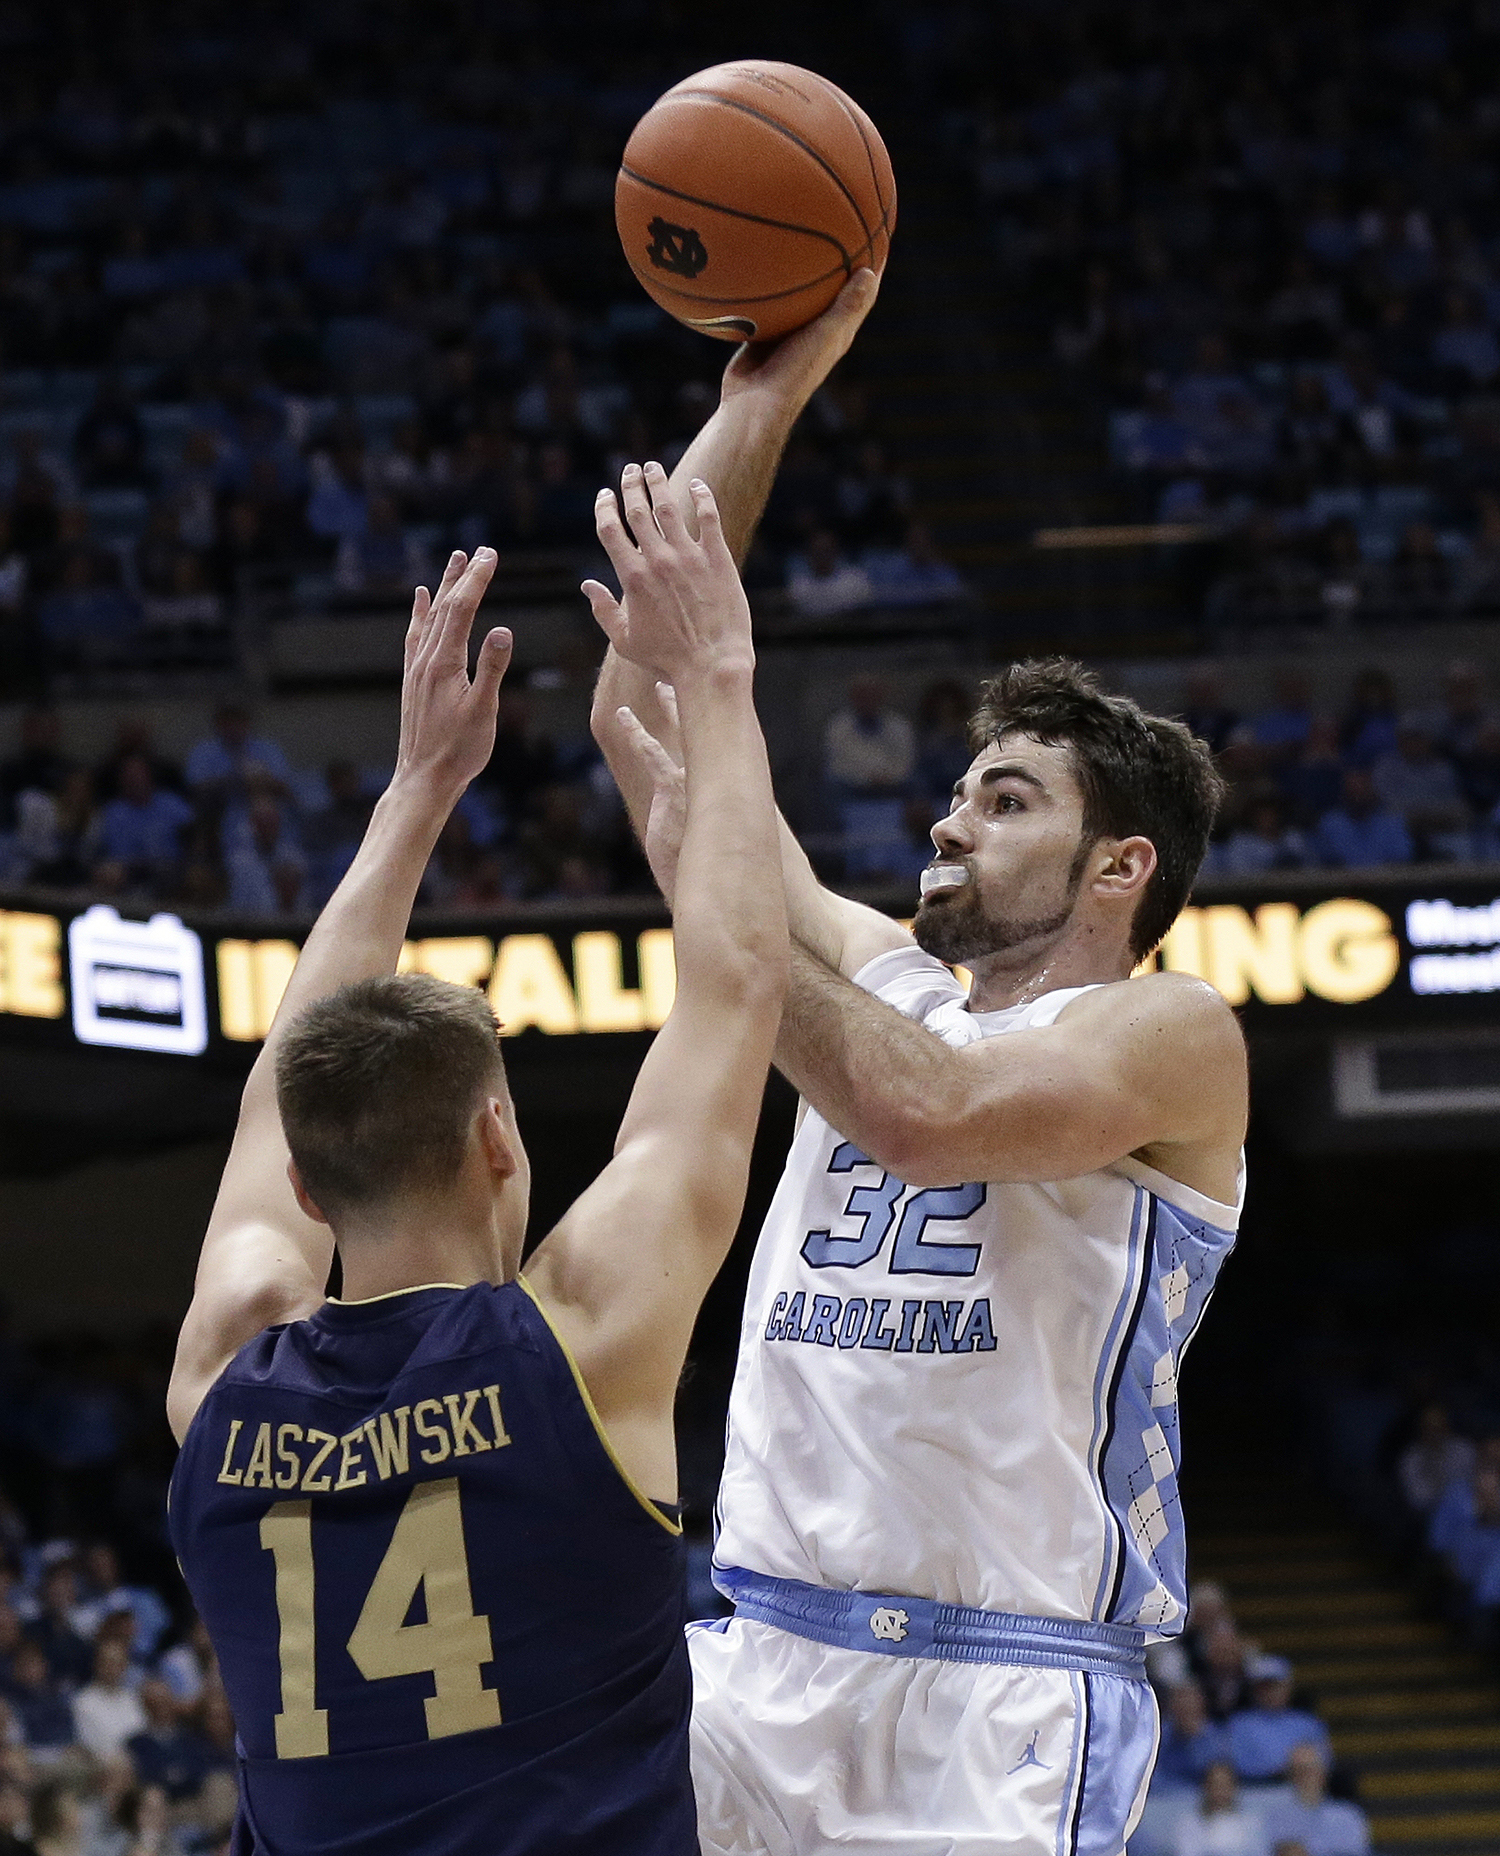 "<div class=""meta image-caption""><div class=""origin-logo origin-image ap""><span>AP</span></div><span class=""caption-text"">North Carolina's Luke Maye (32) shoots while Notre Dame's Nate Laszewski (14) defends during the first half. (Gerry Broome)</span></div>"